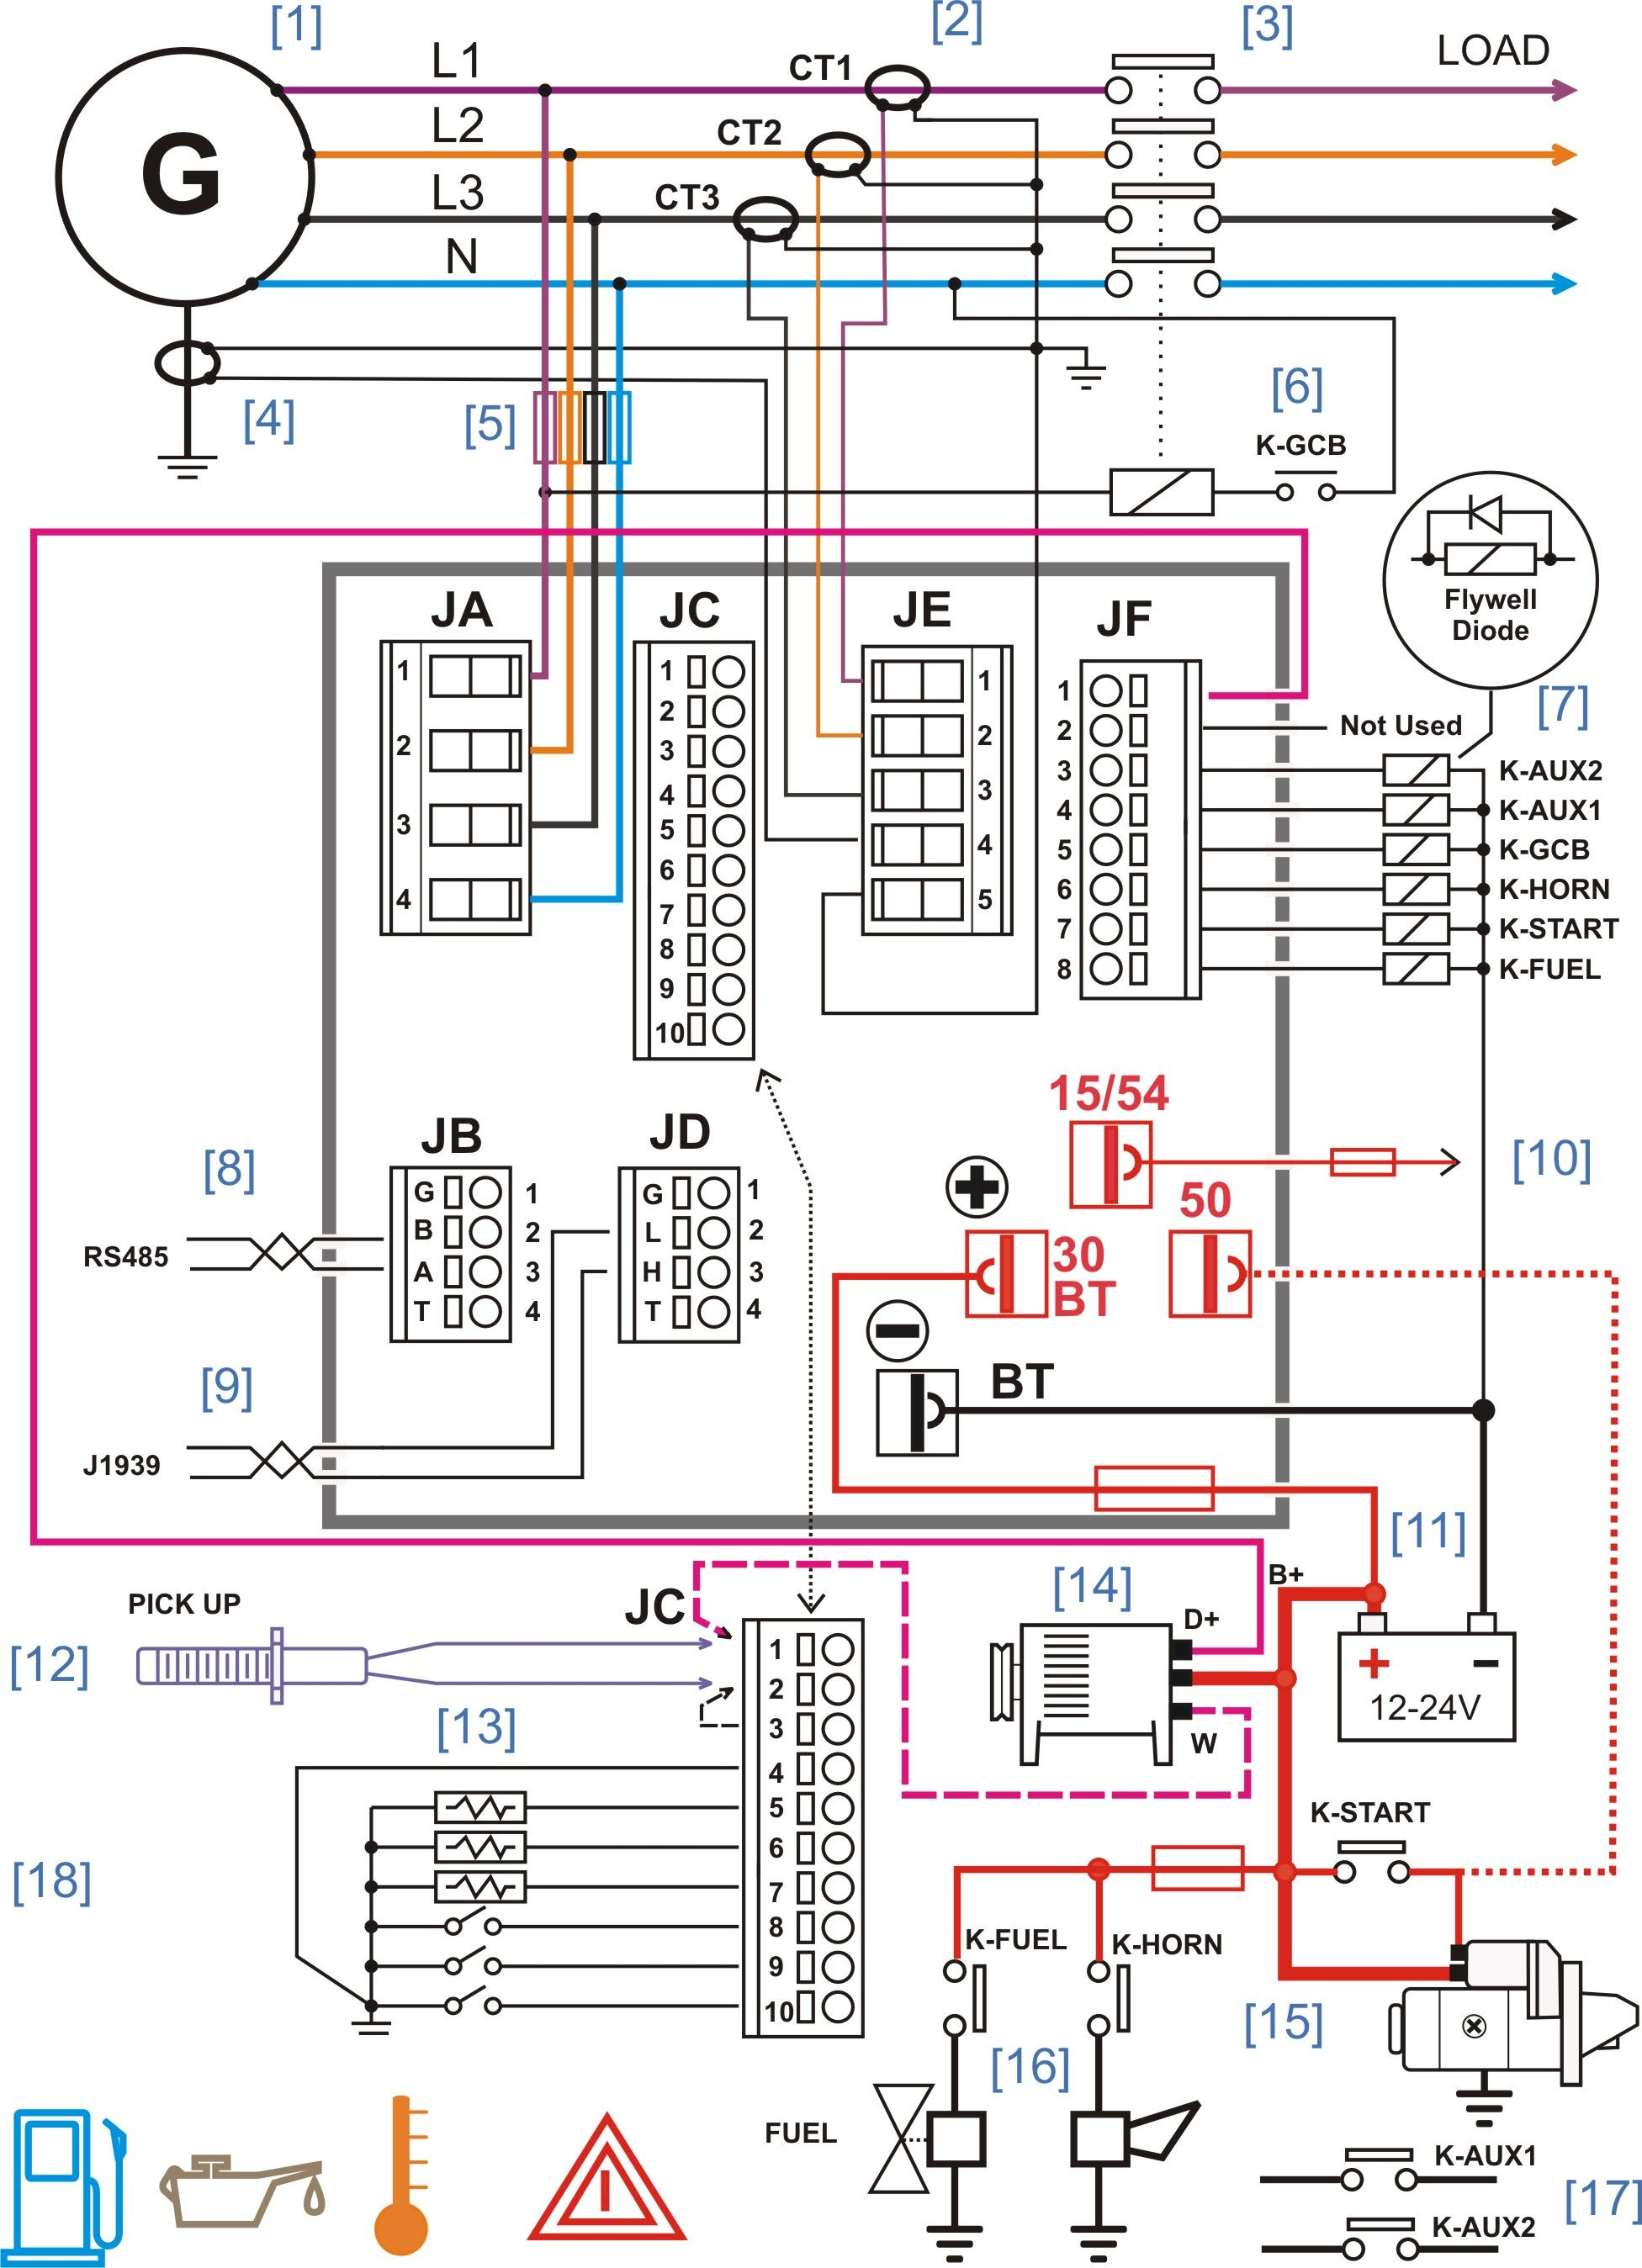 diesel generator control panel wiring diagram diesel generators in rh  pinterest com wiring diagram for a generator transfer switch wiring diagram  generator ...